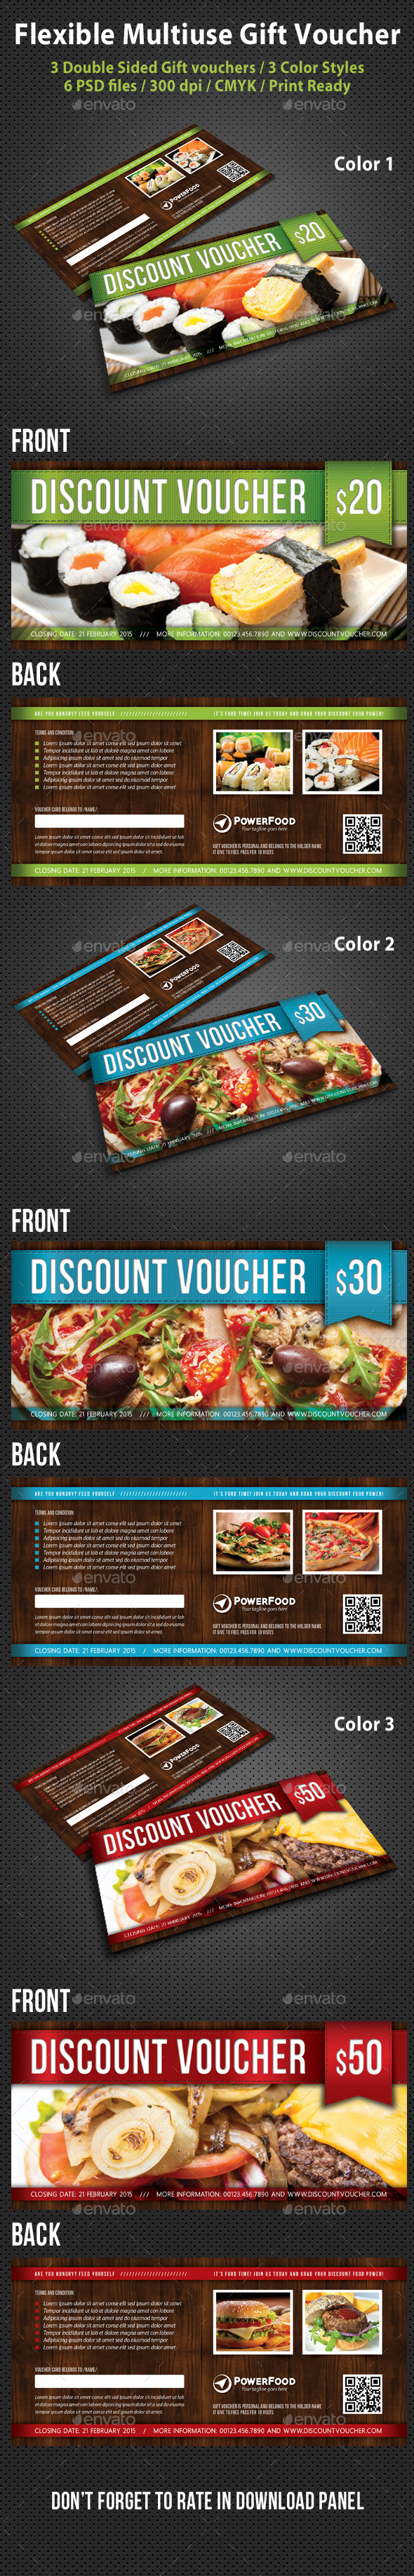 GraphicRiver Flexible Multiuse Gift Voucher V02 10404977